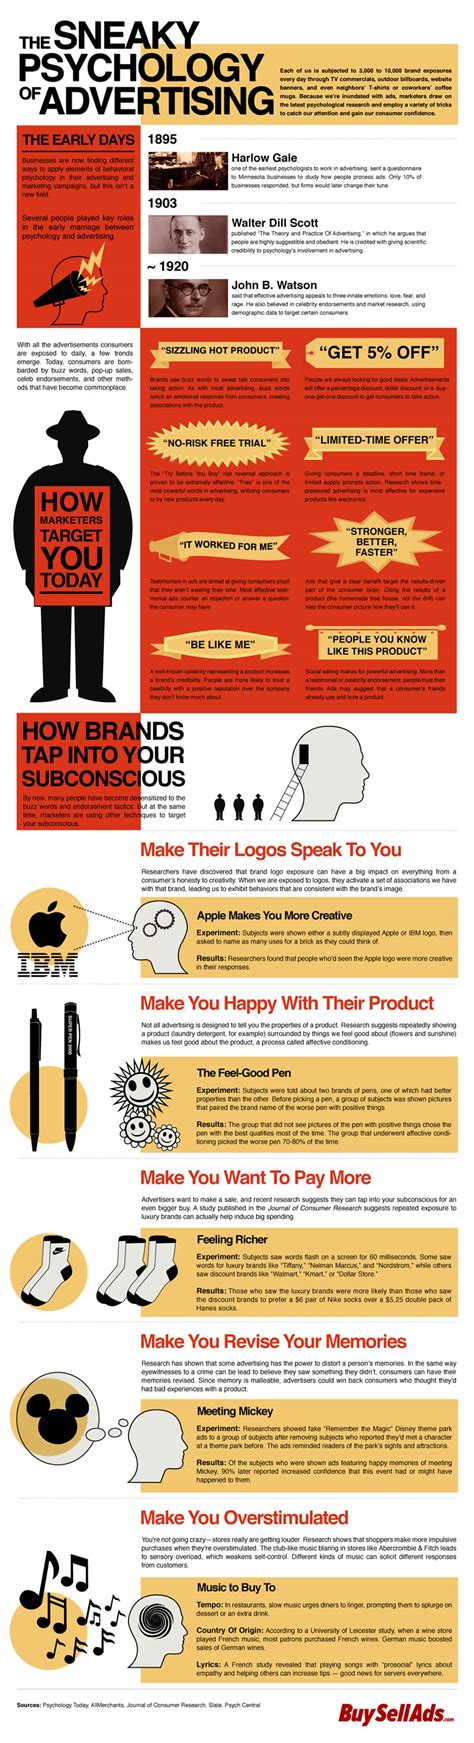 infographic the psychology of graphics bigstock blog the sneaky psychology of advertising infographic